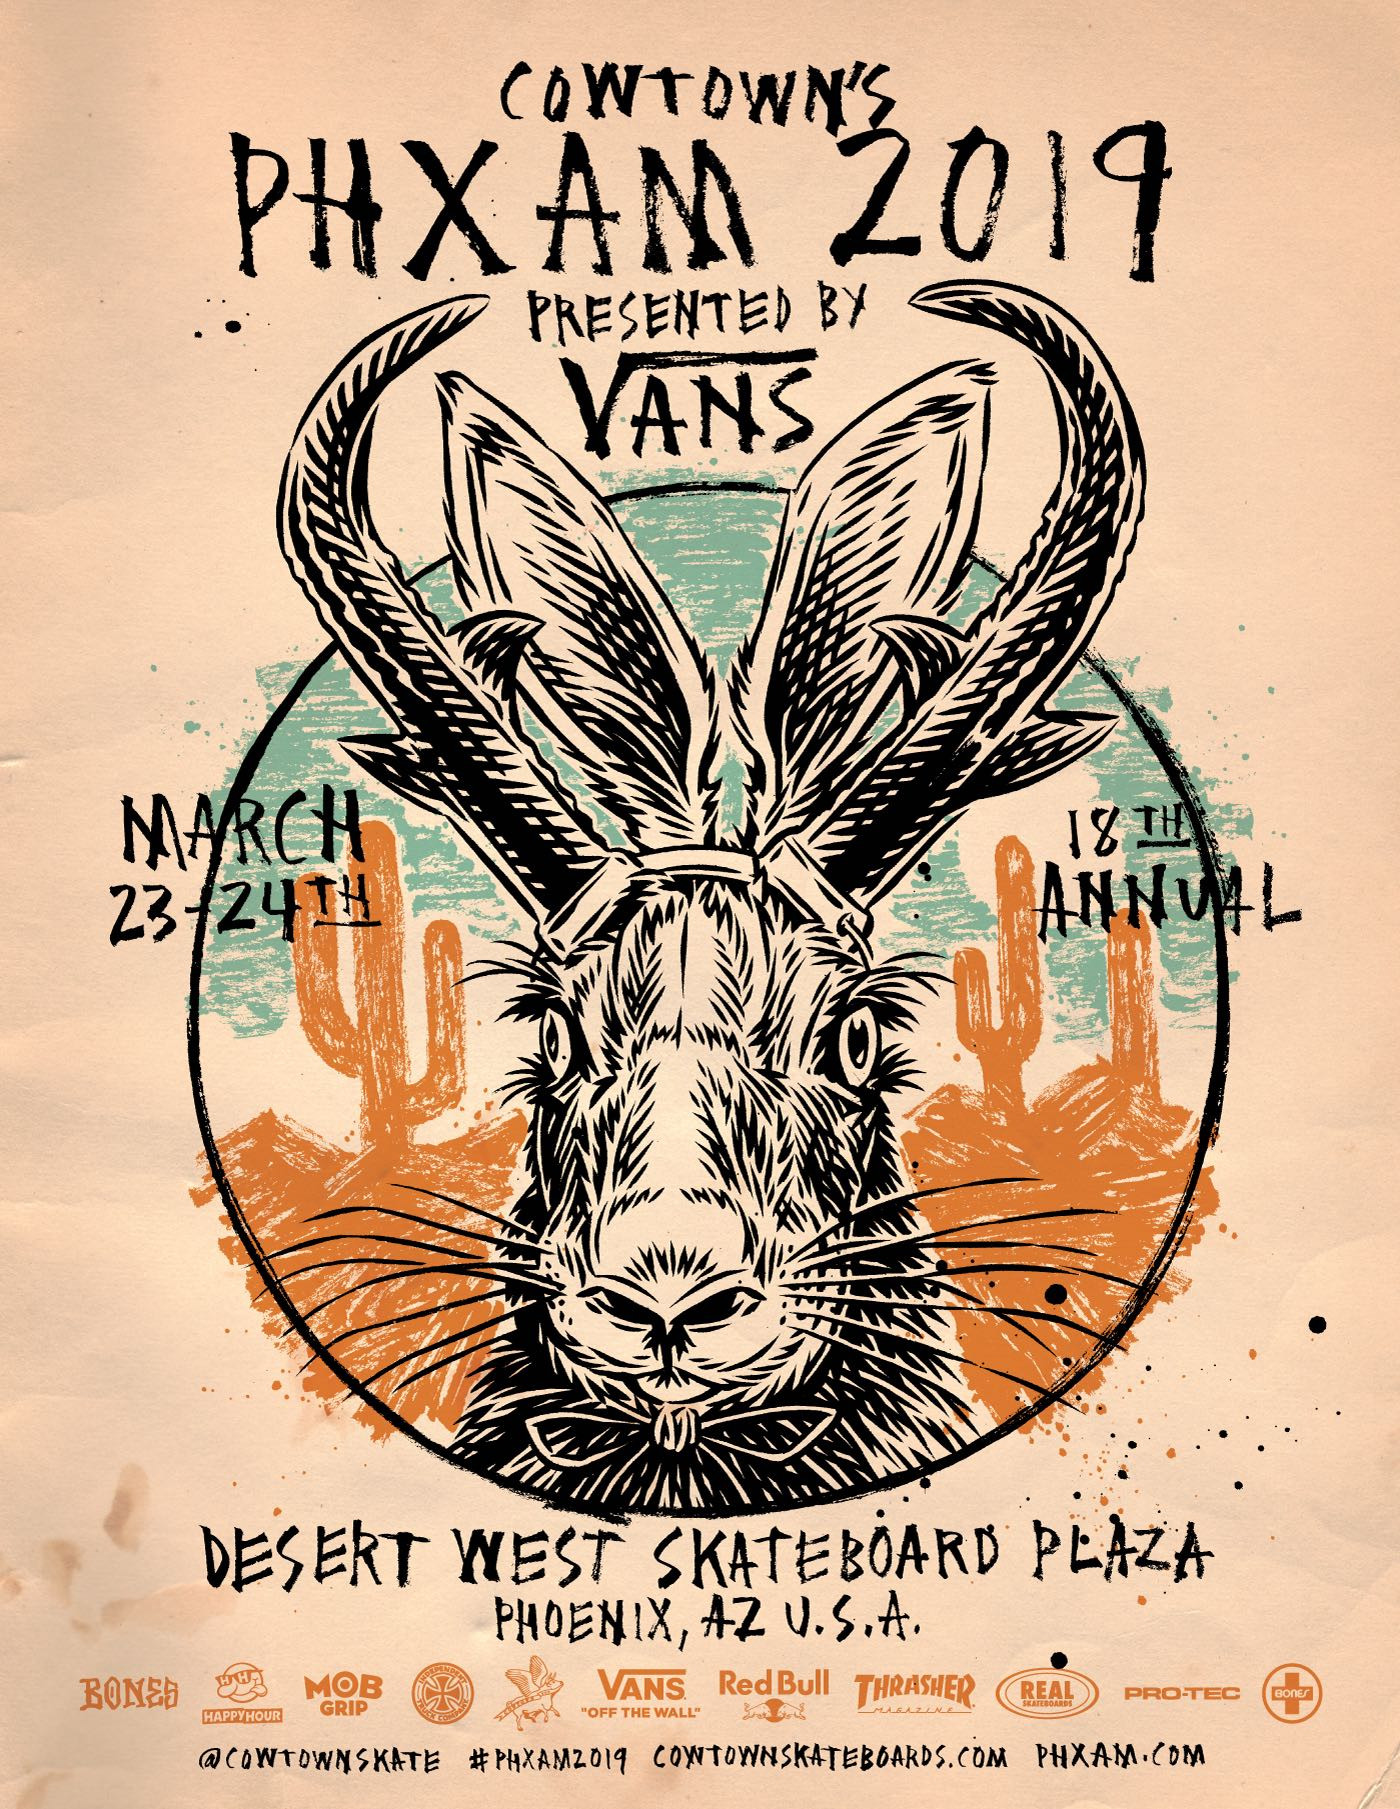 COWTOWN ANNOUNCES PHXAM 2019 DATES